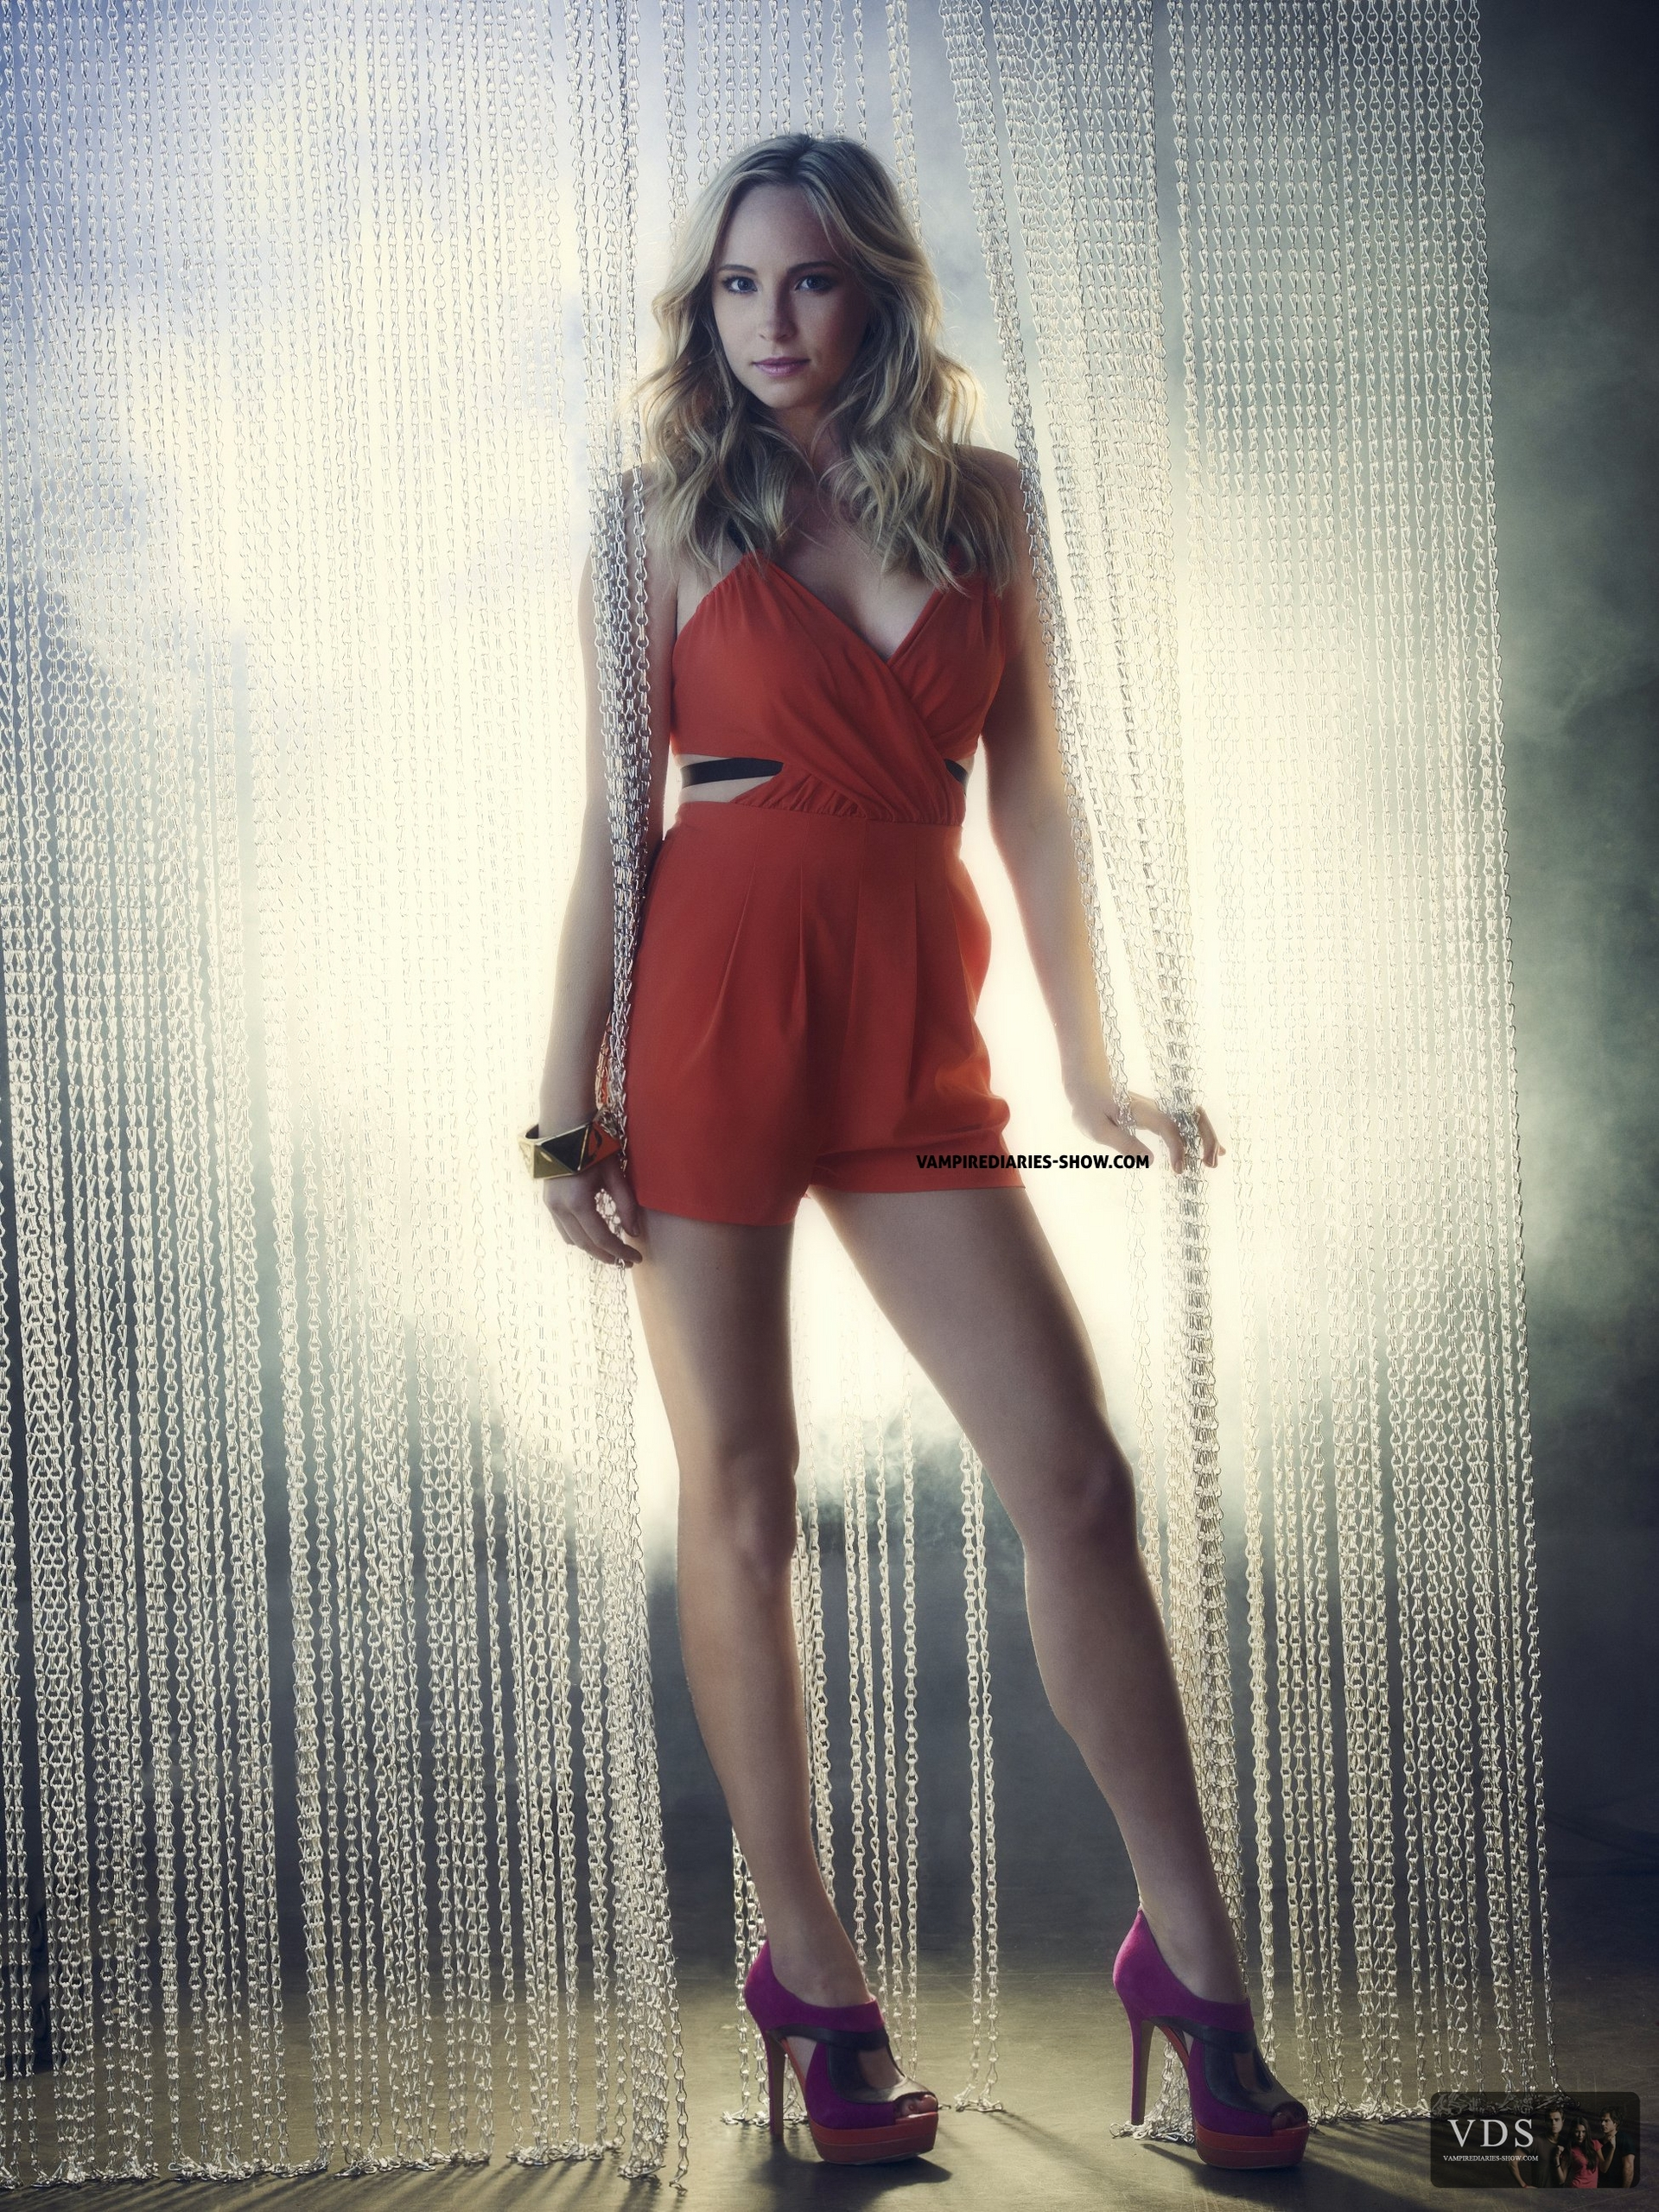 Candice's TVD Season 3 promotional photos. [HQ]